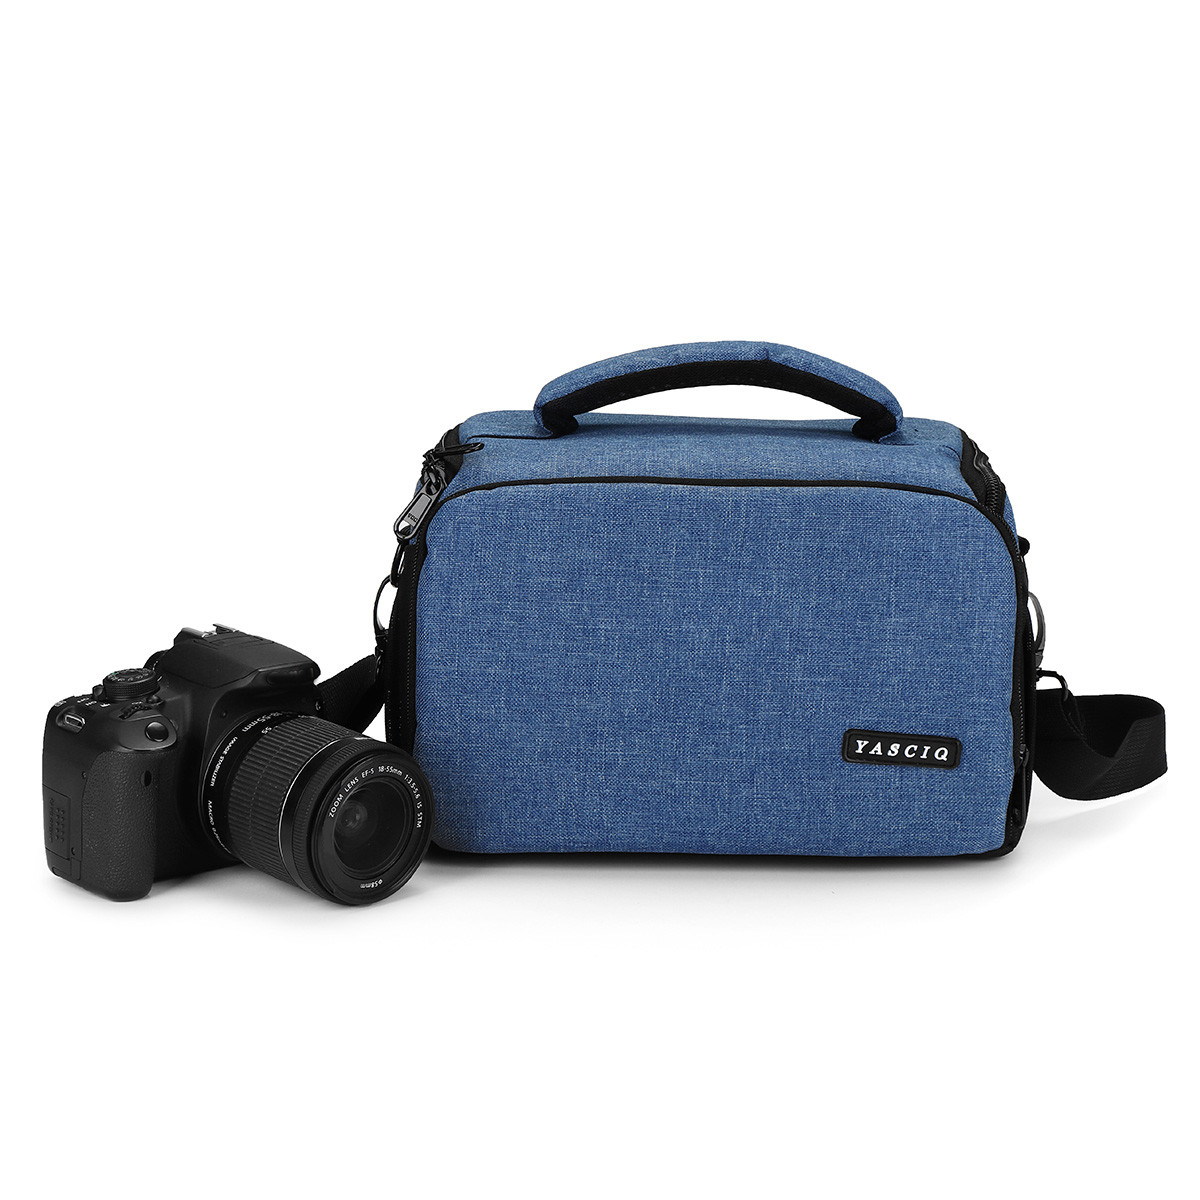 Professional DSLR Shoulder Camera Bag Outdoor Sports Digital Waterproof Anti-theft Camera Bag